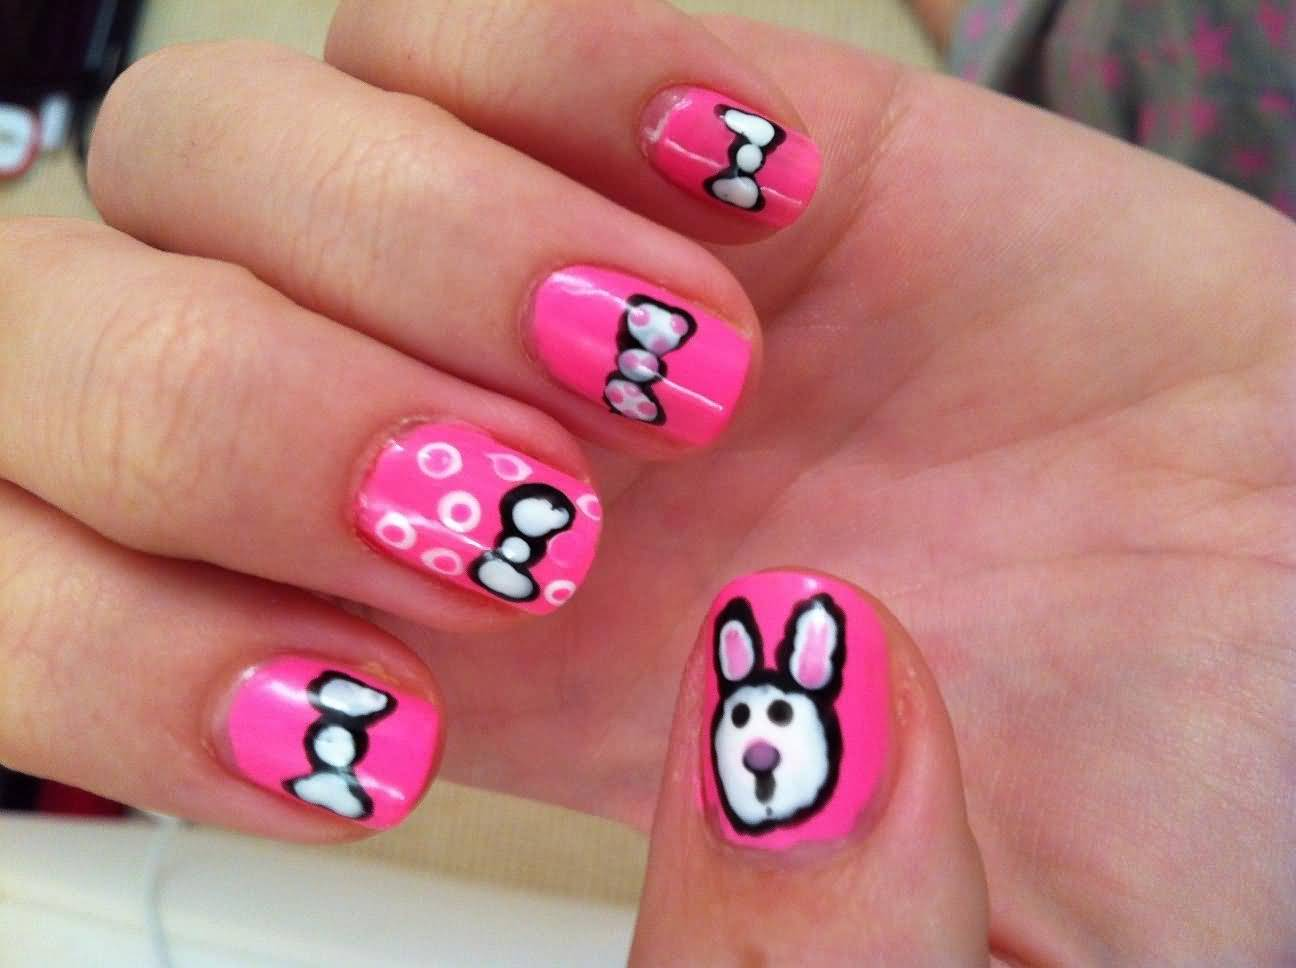 Bunny Face And Simple Bow Nail Art Design